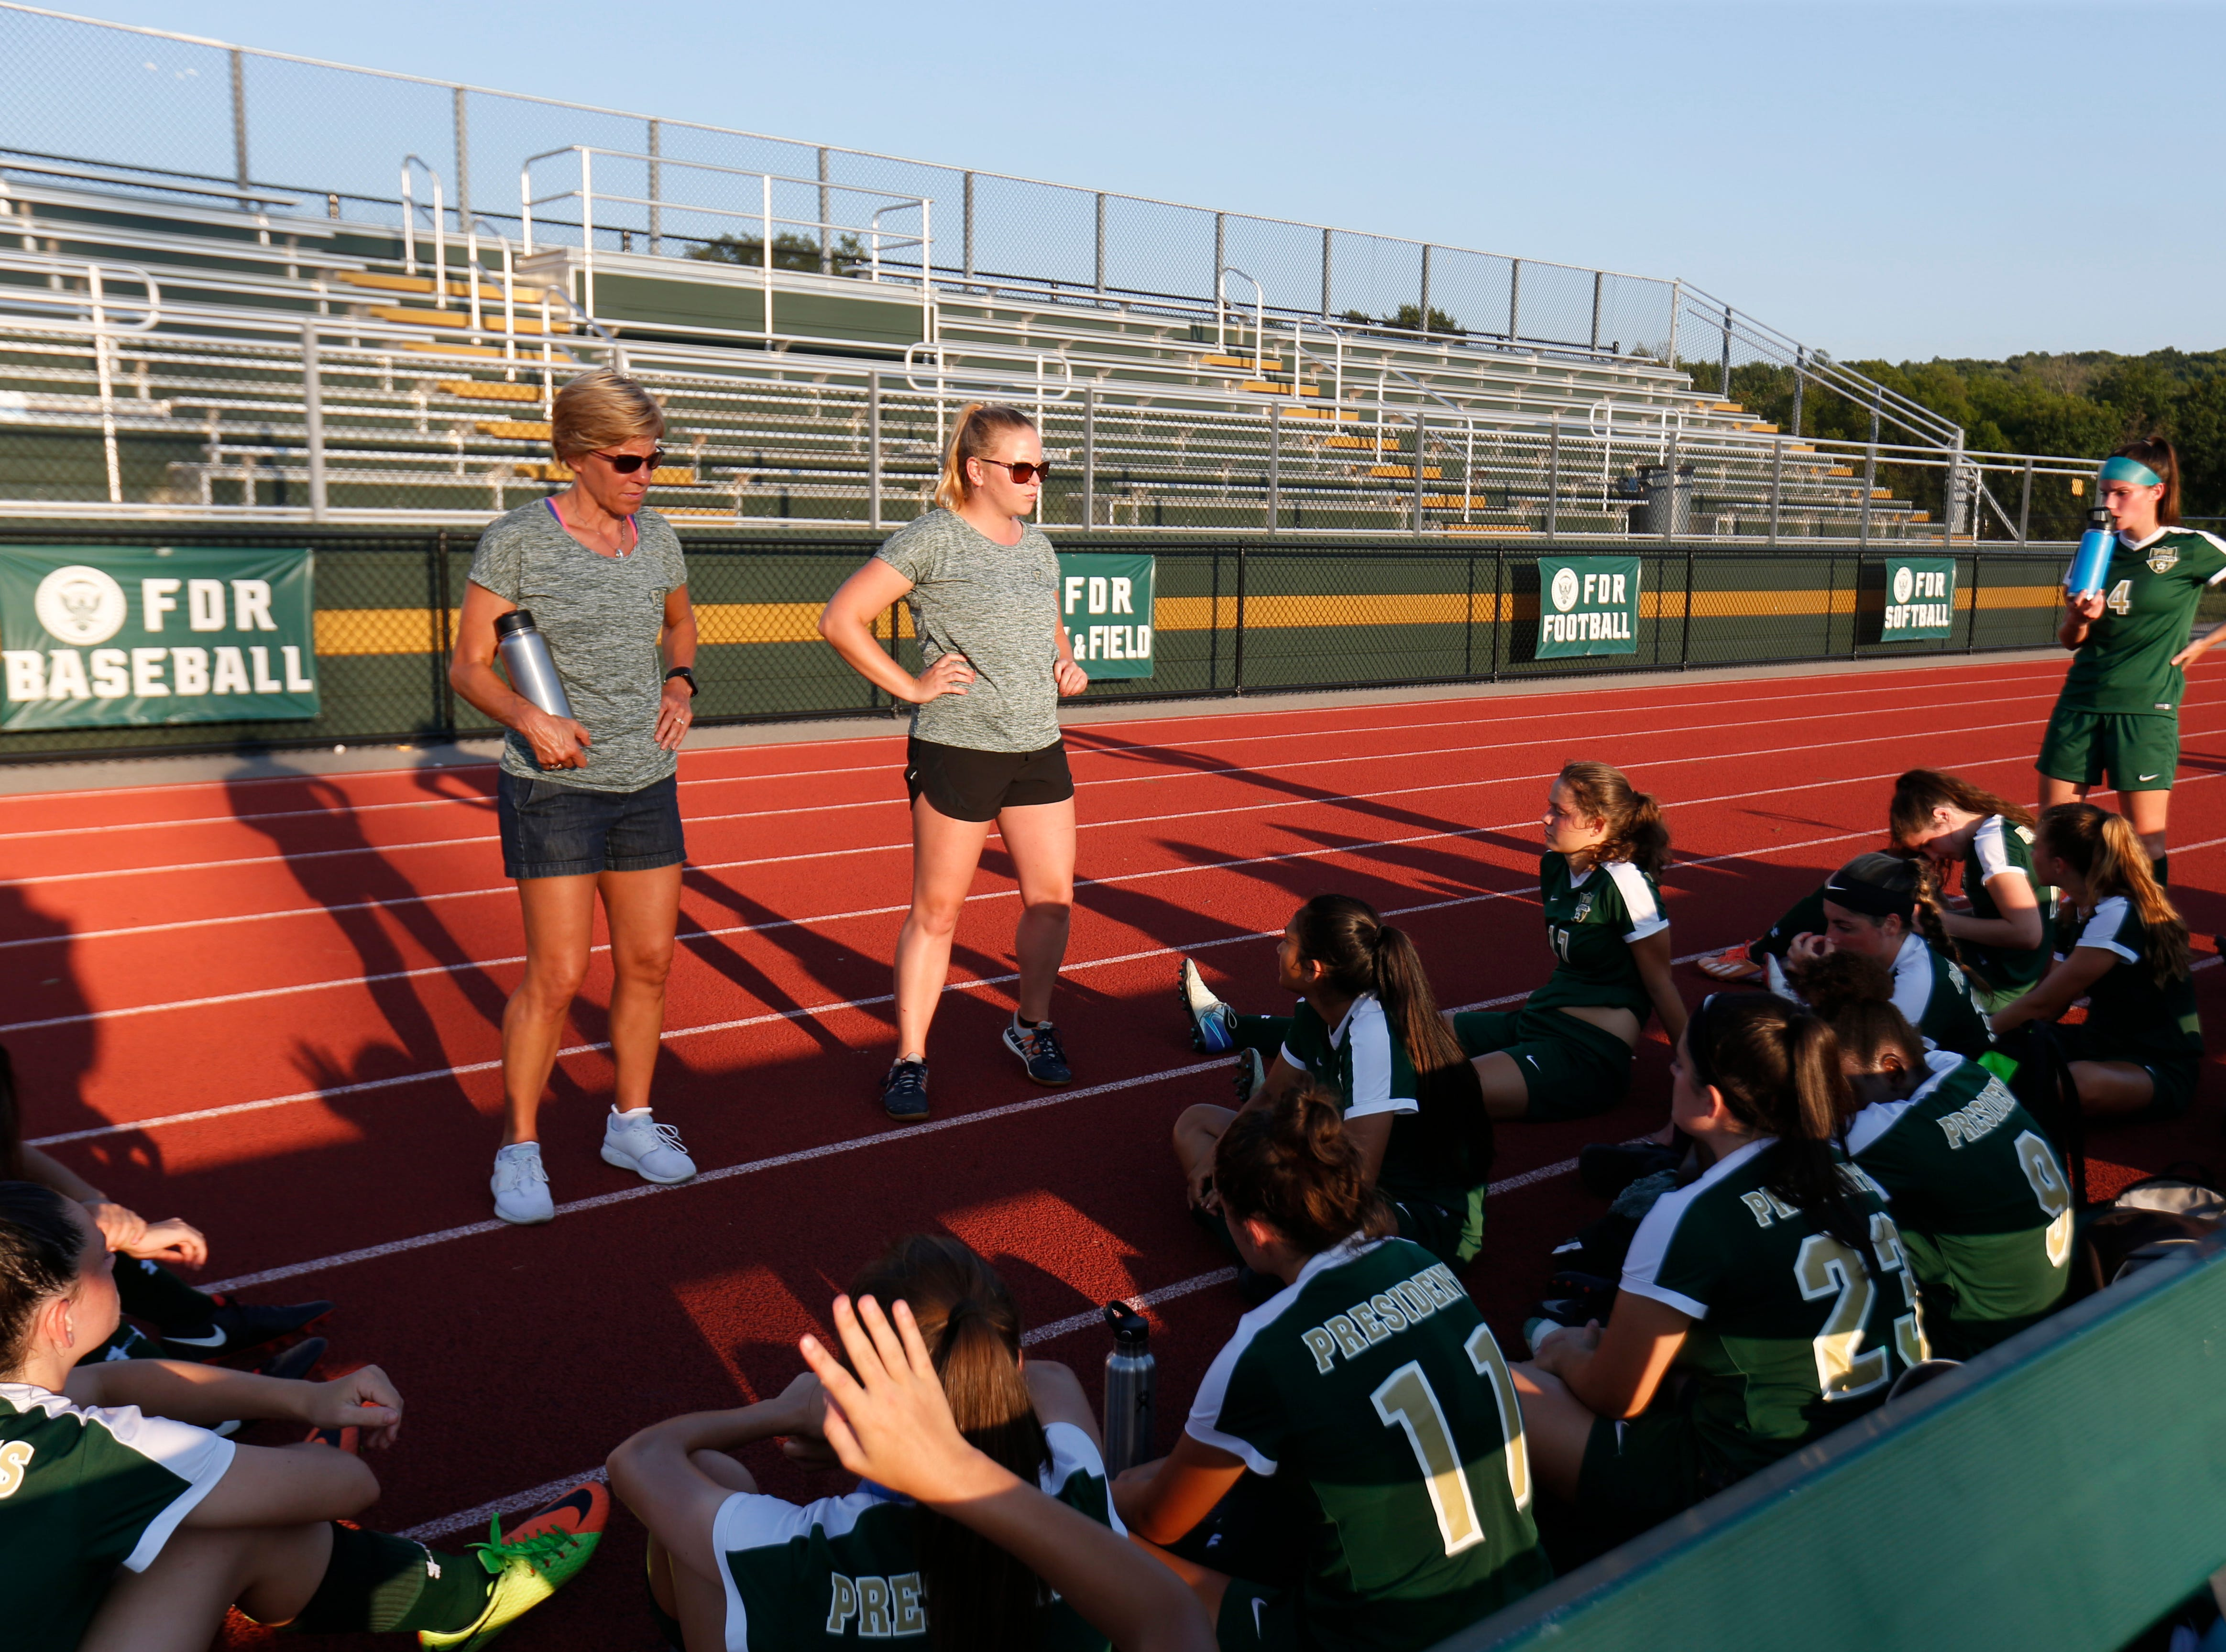 FDR's Barb Demczar and Kristi Lee Hendricks talk to their players during half-time in Wednesday's game versus New Paltz in Hyde Park on September 5, 2018.